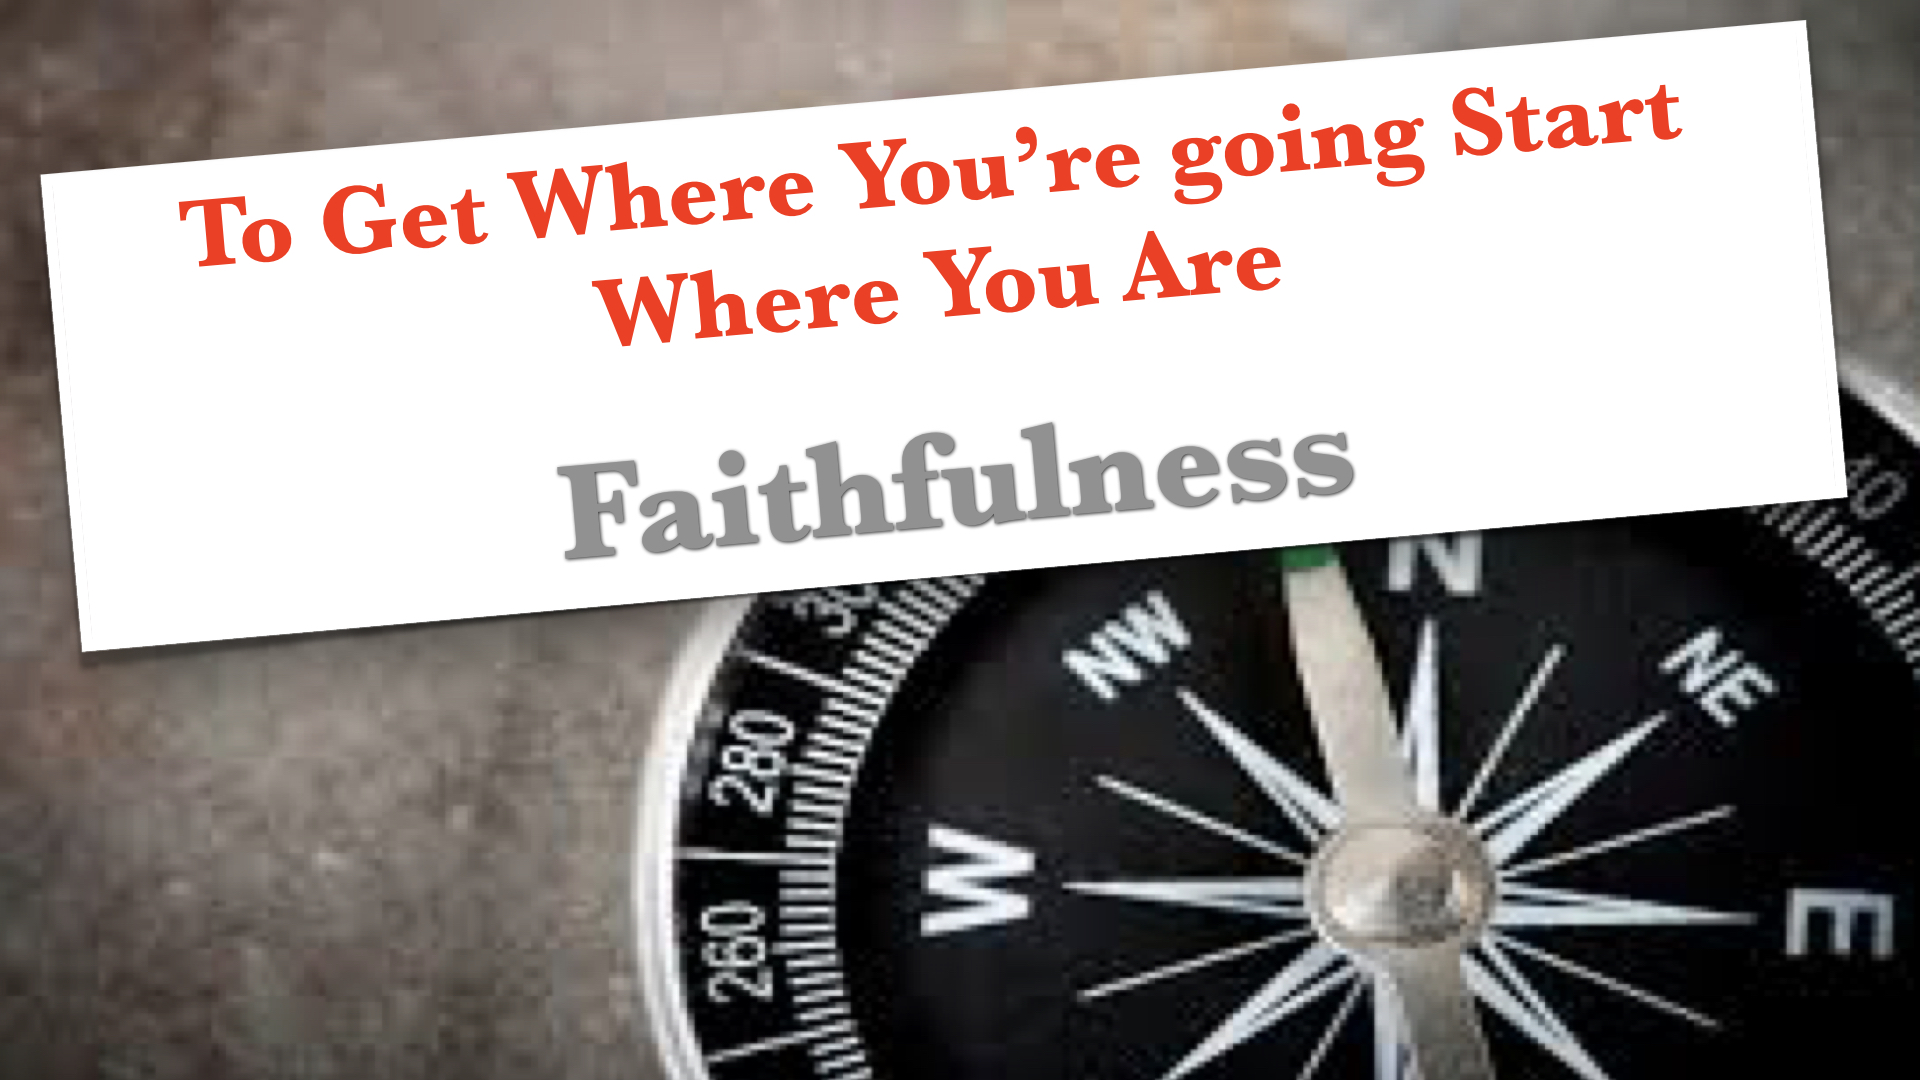 Faithfulness 3242019 85741 AM